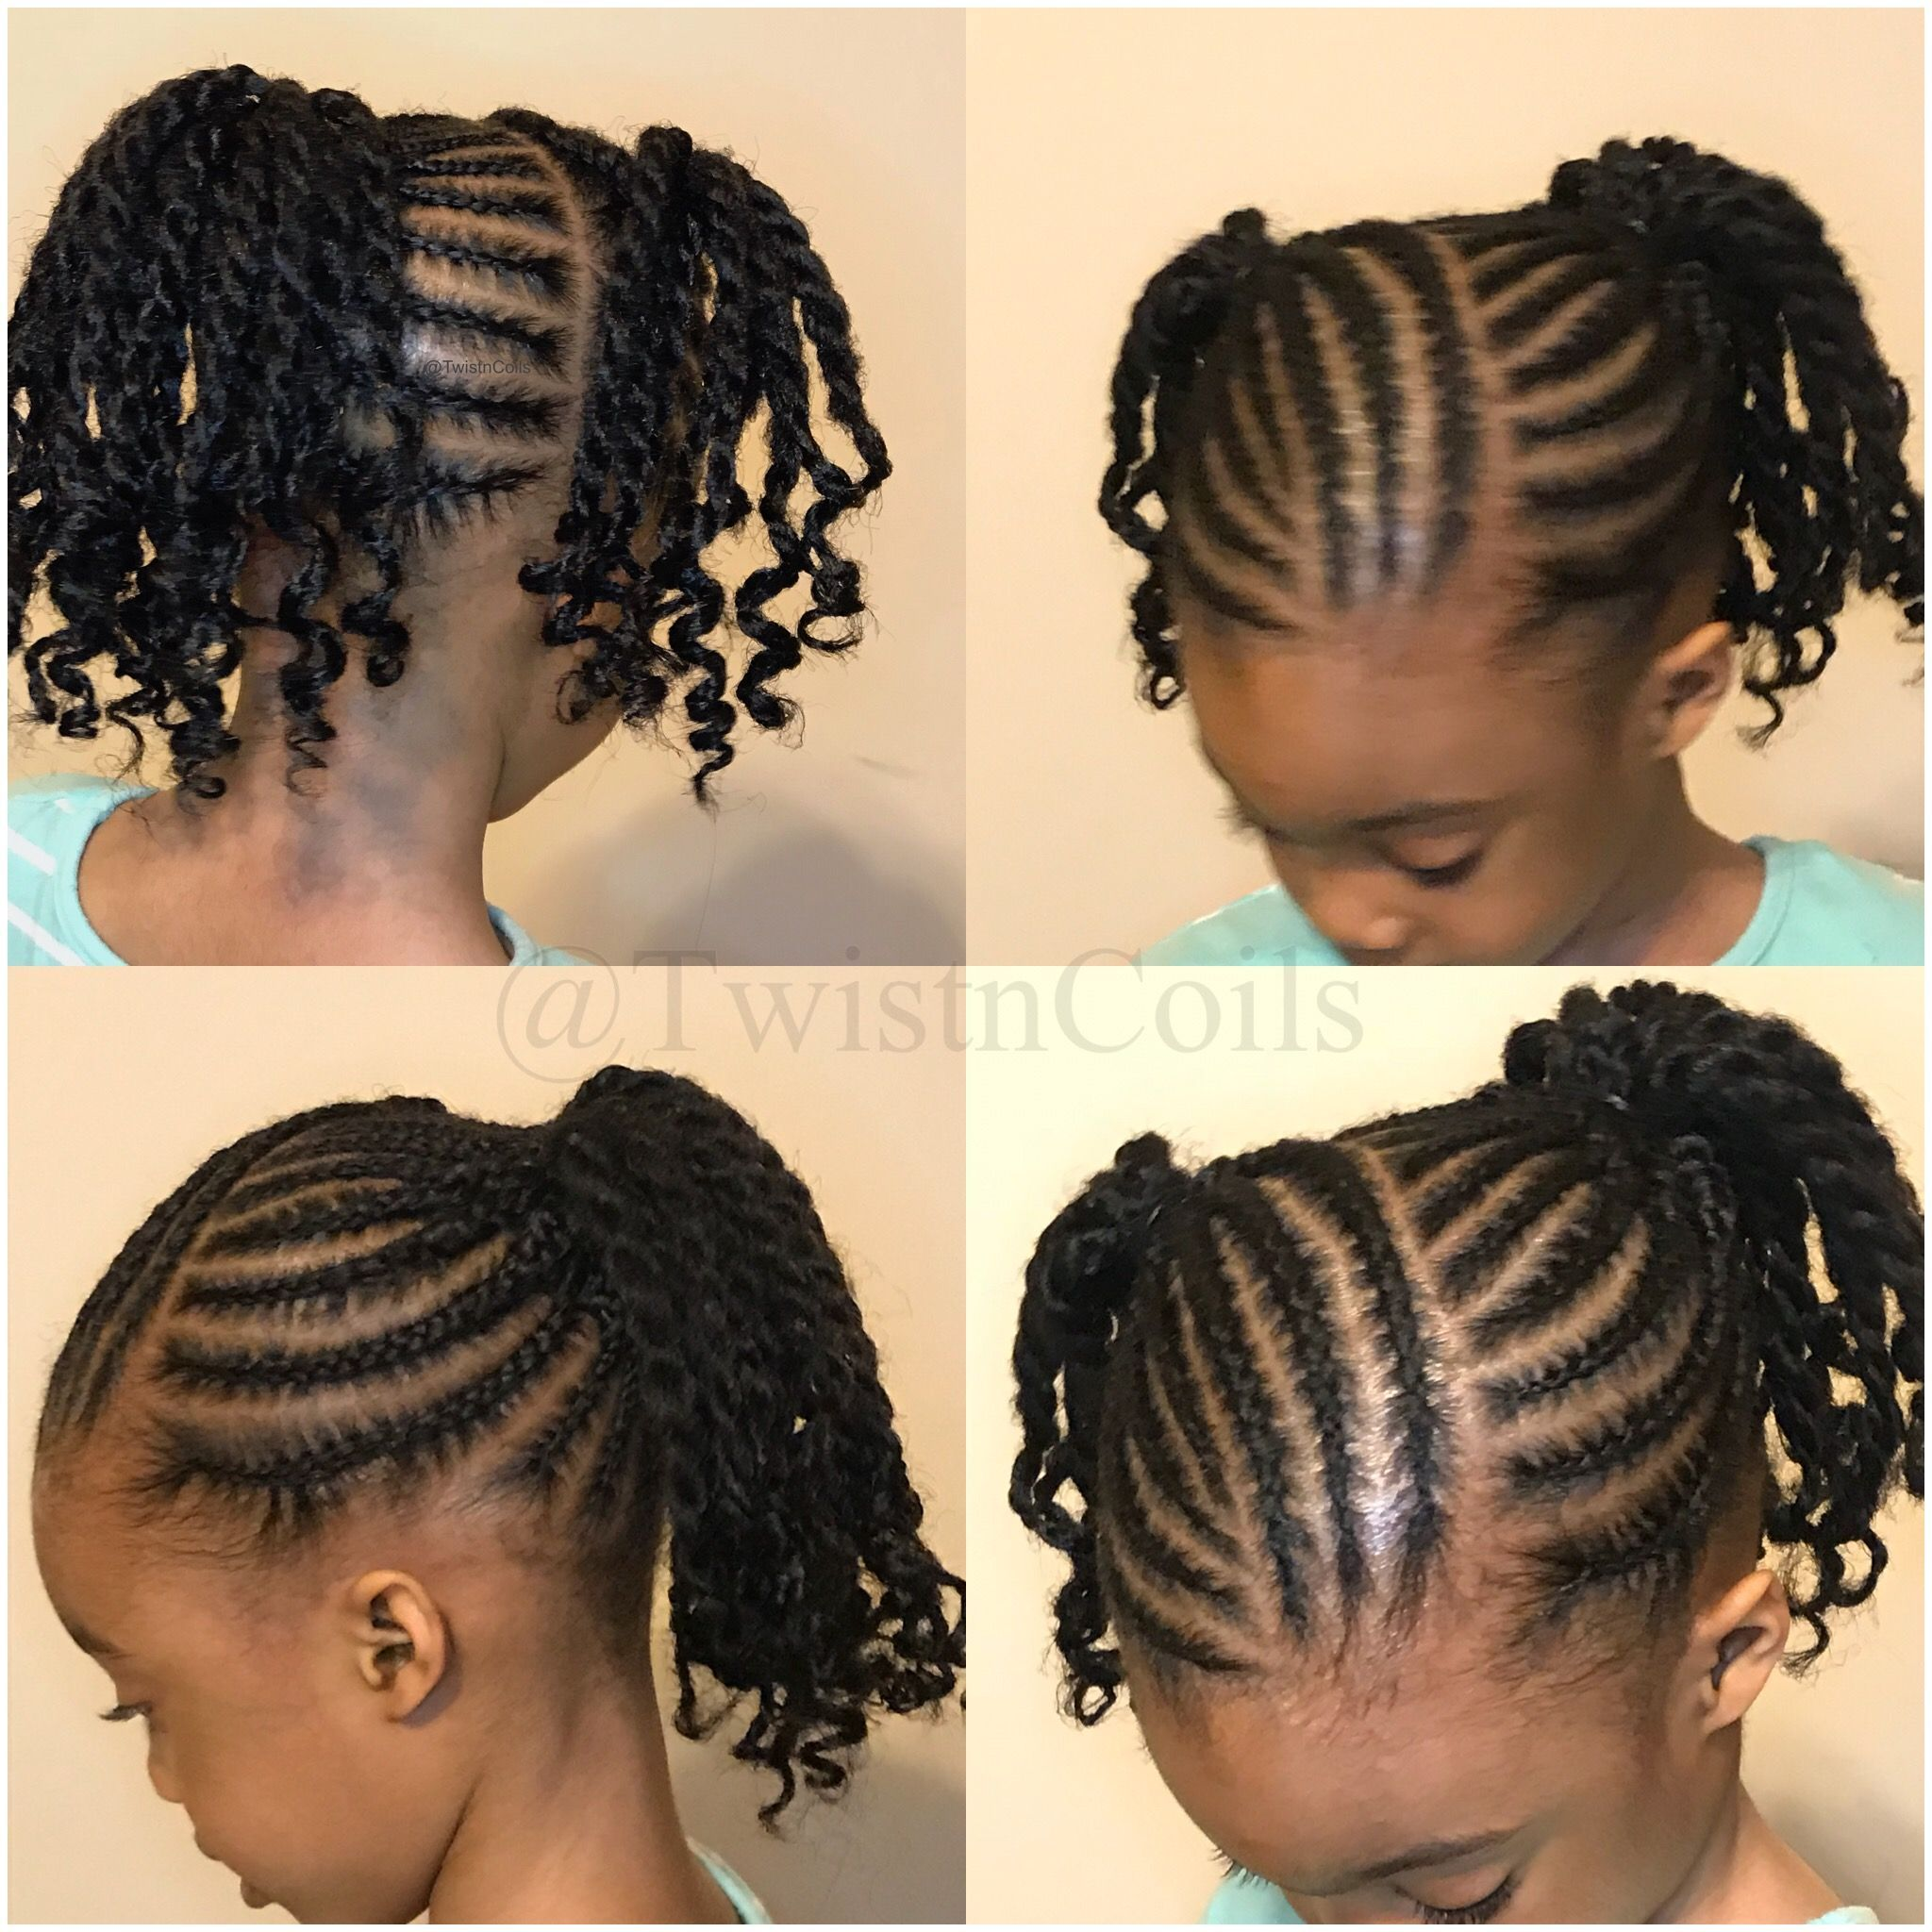 Braided Hairstyles That Make Your Hair Grow Braided Hairstyles For 60 Year Olds Braided To Scal In 2020 Kids Hairstyles Girls Natural Hairstyles Natural Hair Styles